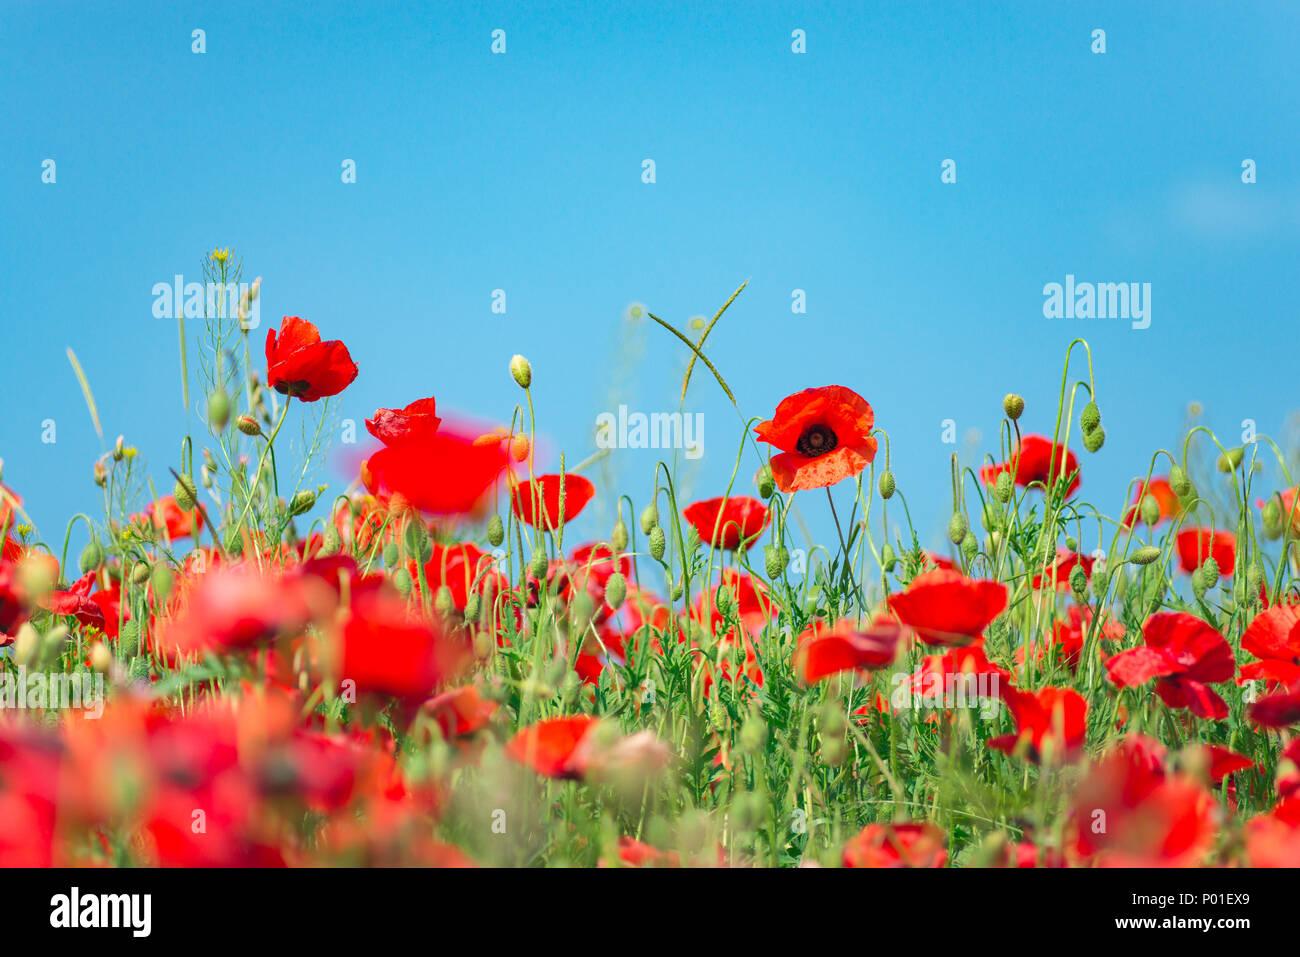 Remembrance day, Anzac Day, serenity. Opium poppy, botanical plant, ecology. Poppy flower field, harvesting. Summer and spring, landscape, poppy seed  - Stock Image